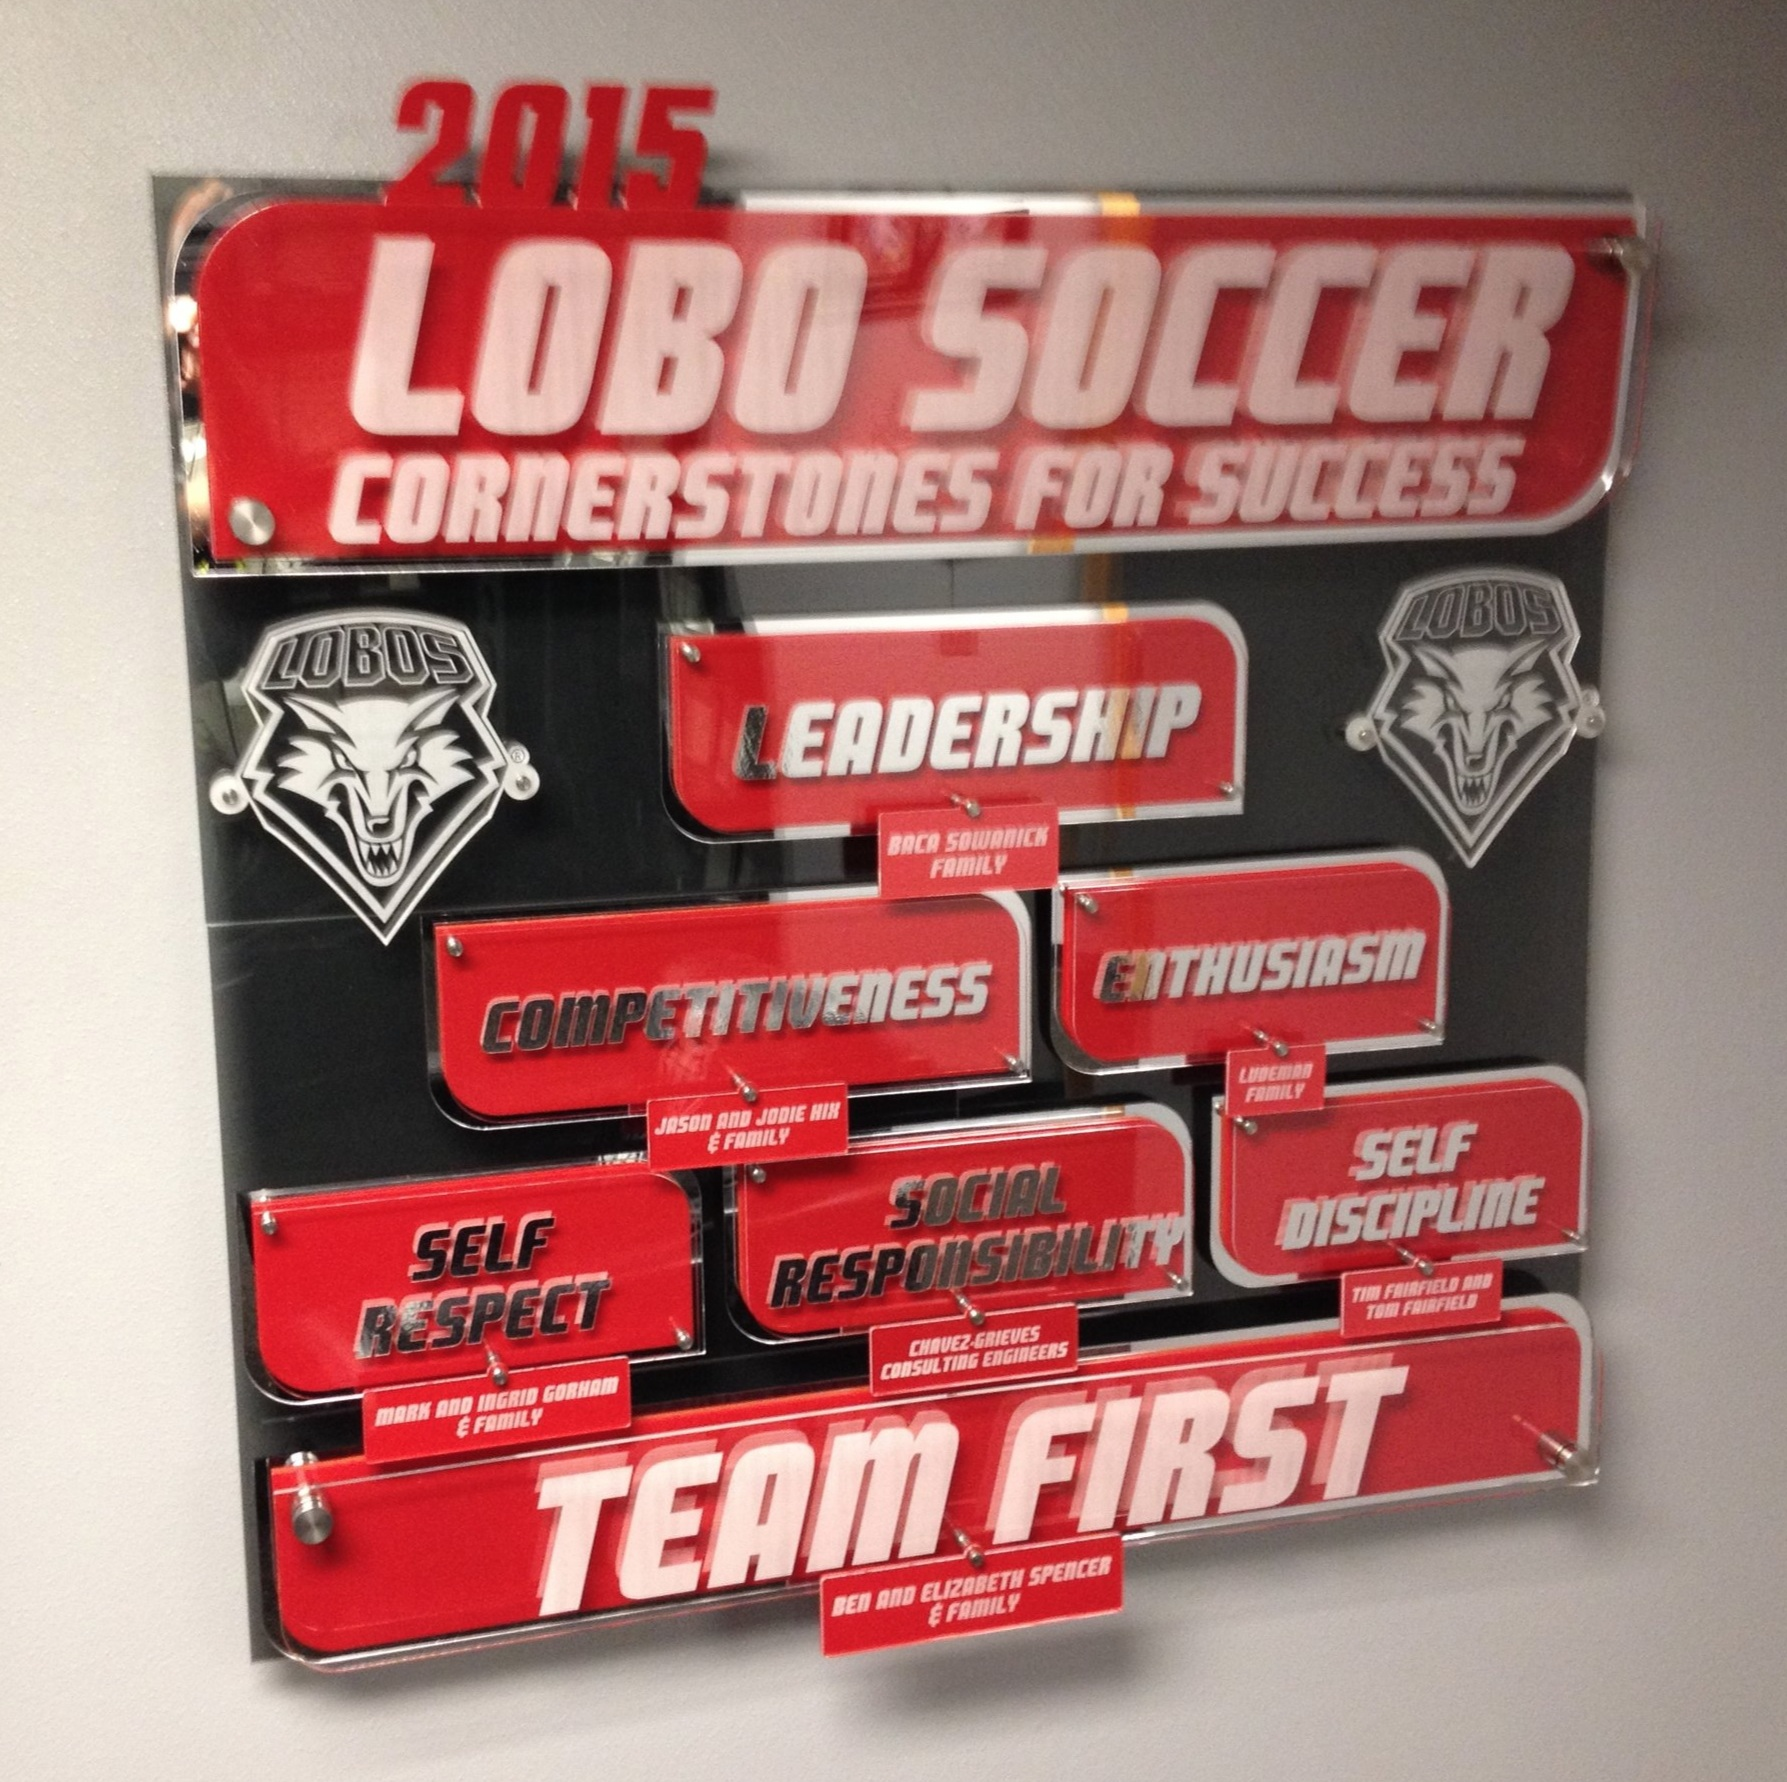 """Custom Display - 40""""x 40""""x 3.5"""", multi-layer acrylic display of University of New Mexico Men's Soccer """"Pyramid of Success"""".  Replaceable tags document annual Program Sponsors.  Contact us for pricing information."""